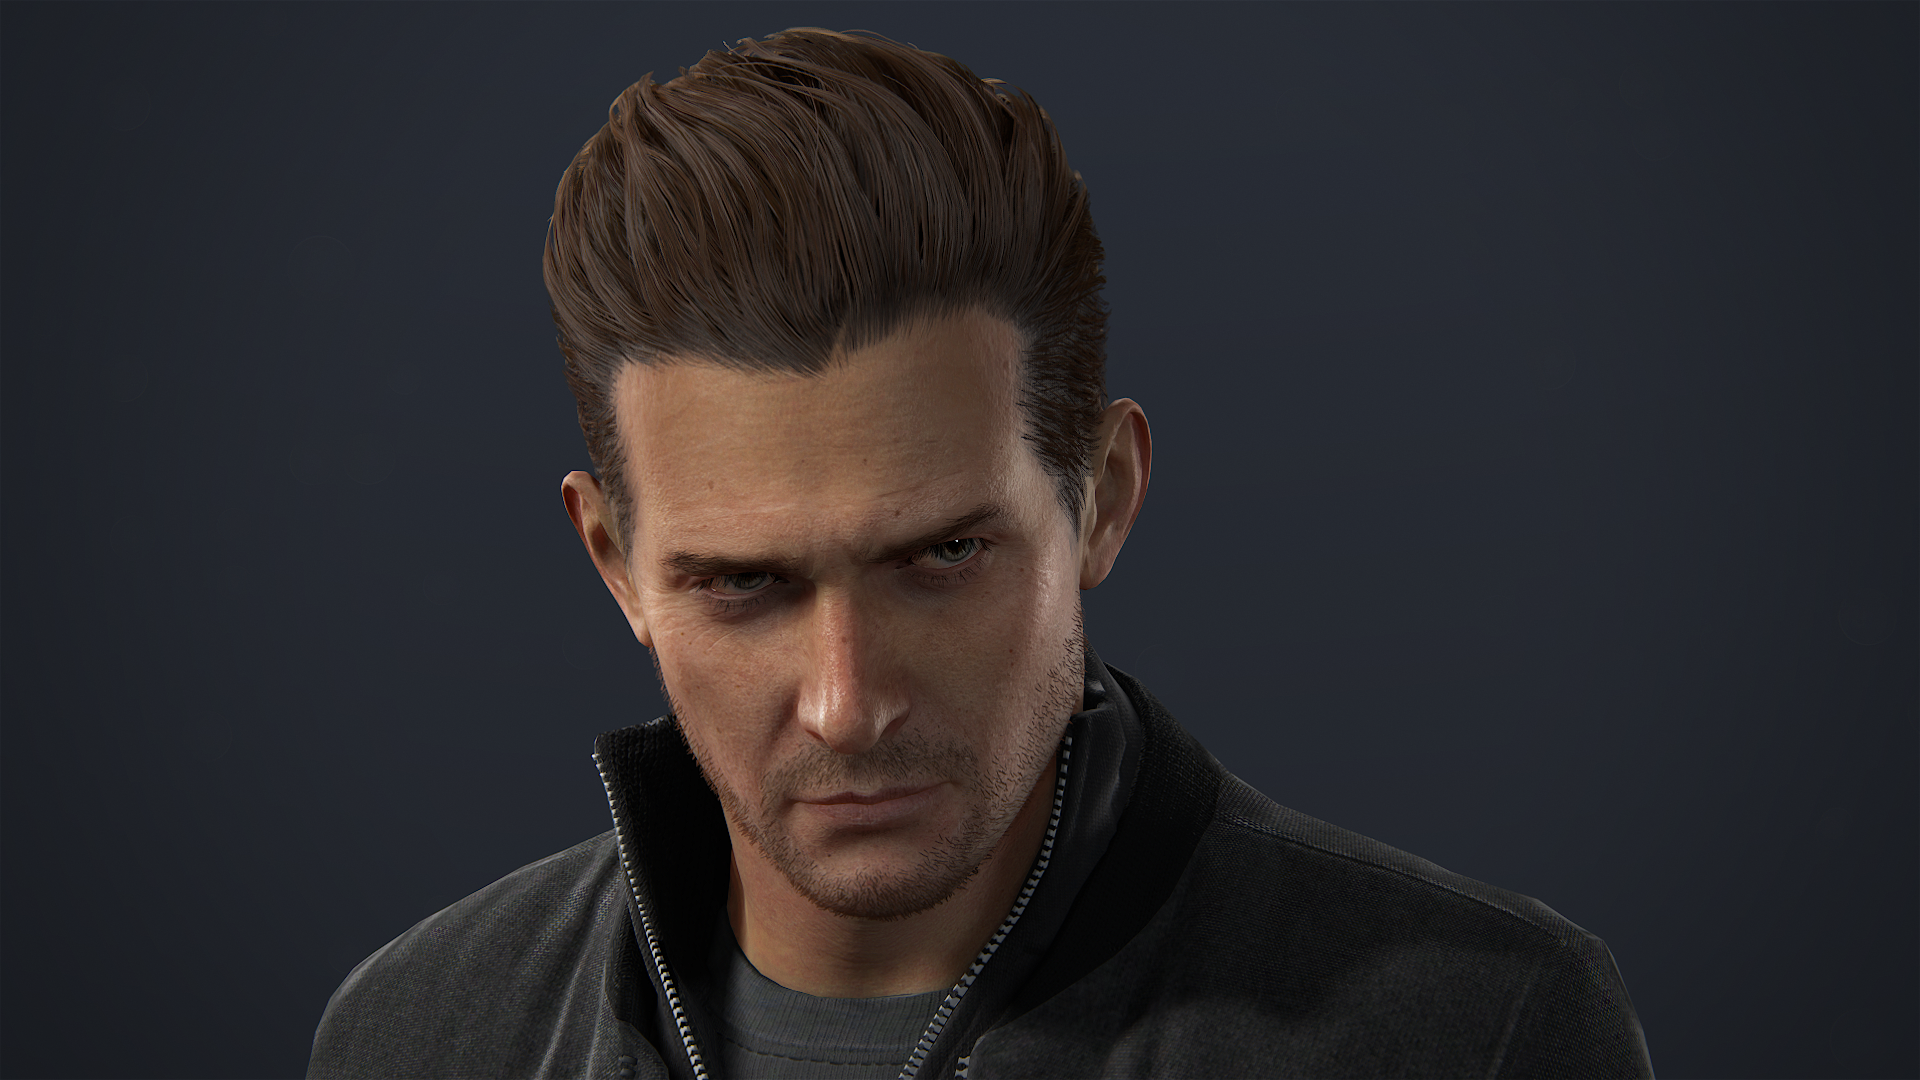 Accurate Human Rendering In Game 2014 2016 Page 54 Beyond3d